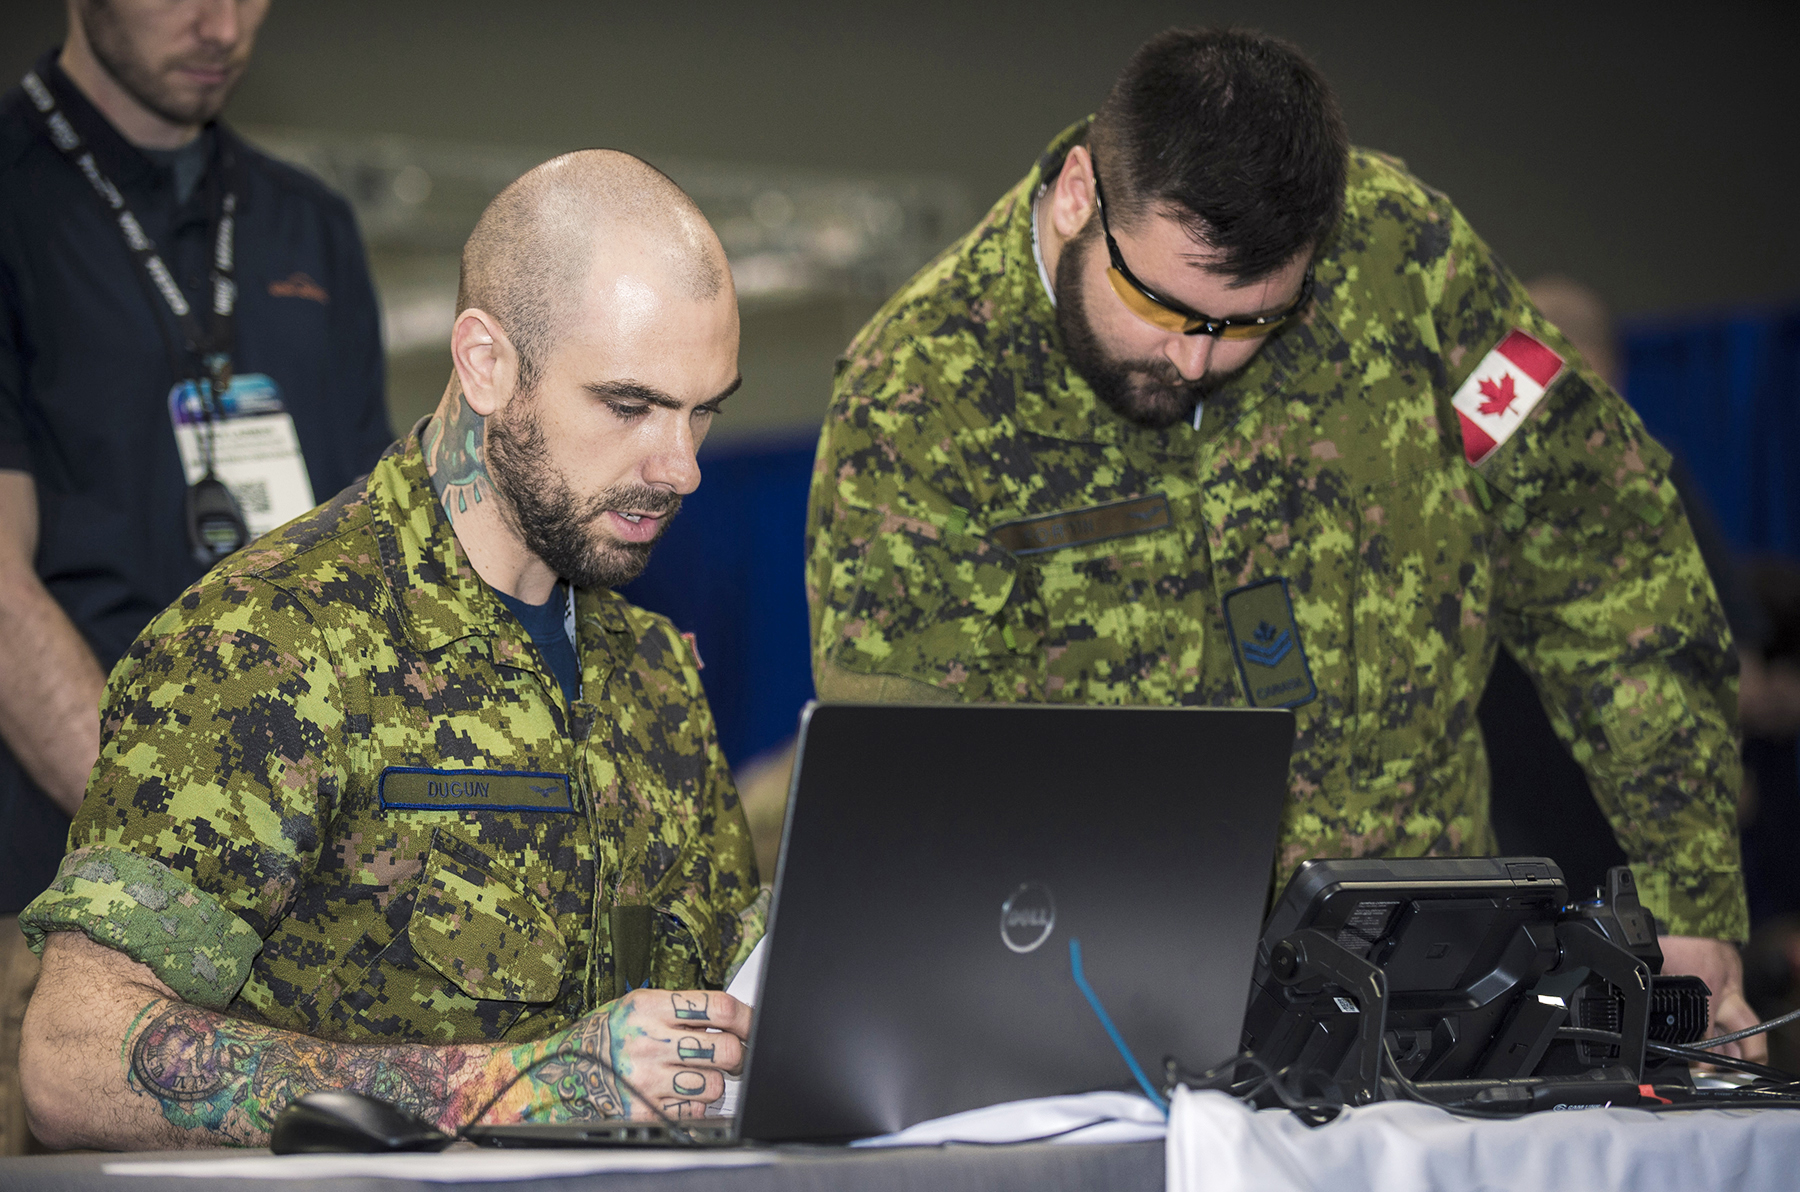 Corporal Marc André Duguay (left), AVS, from 424 Transport and Rescue Squadron, Trenton, with Master Corporal Chris Fortin, AVS, from 418 Transport and Rescue Squadron, check data during the Aerospace Maintenance Competition. Both were members of the RCAF SAR Maintenance Team. PHOTO: RCAF